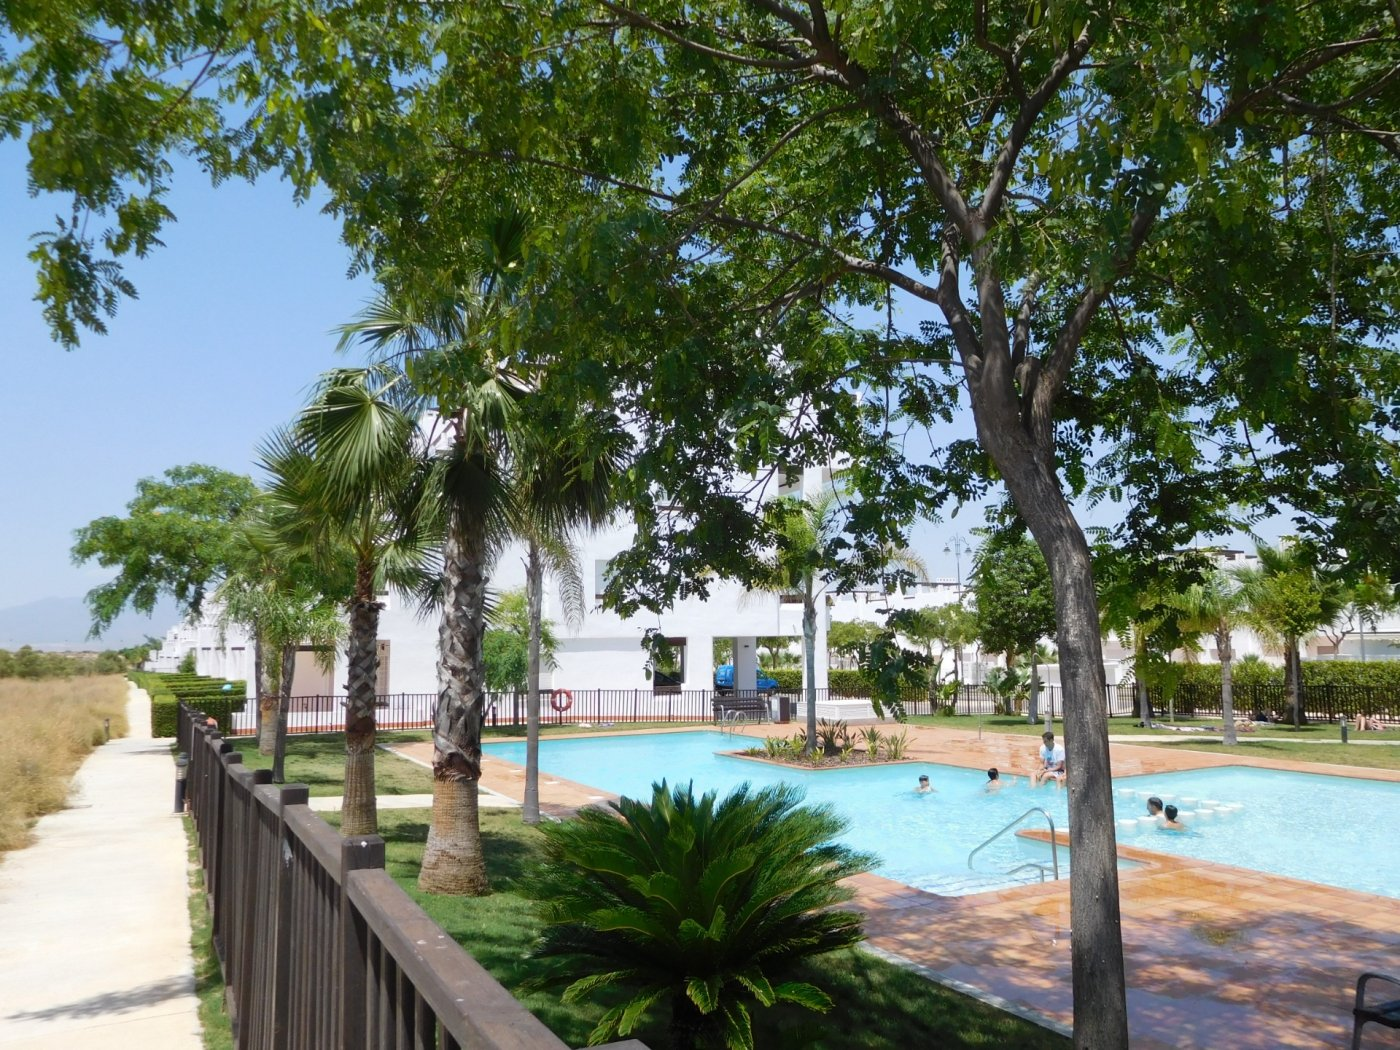 Gallery Image 28 of NEW ON THE MARKET! Front line golf ground floor apartment at Condado de Alhama for sale